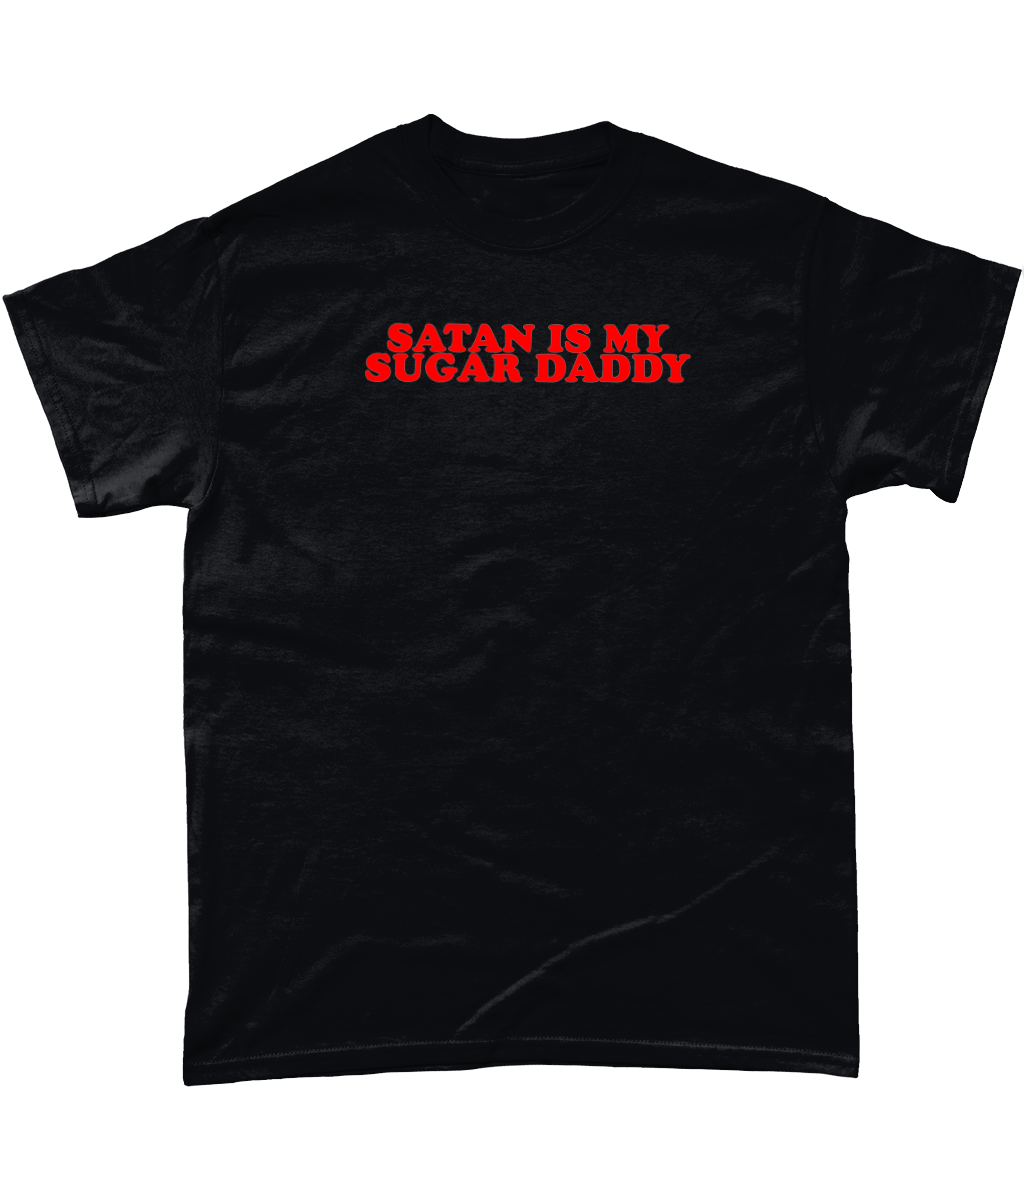 OMGRL Products Black / Small SATAN IS MY SUGAR DADDY T-SHIRT Slogan Tee